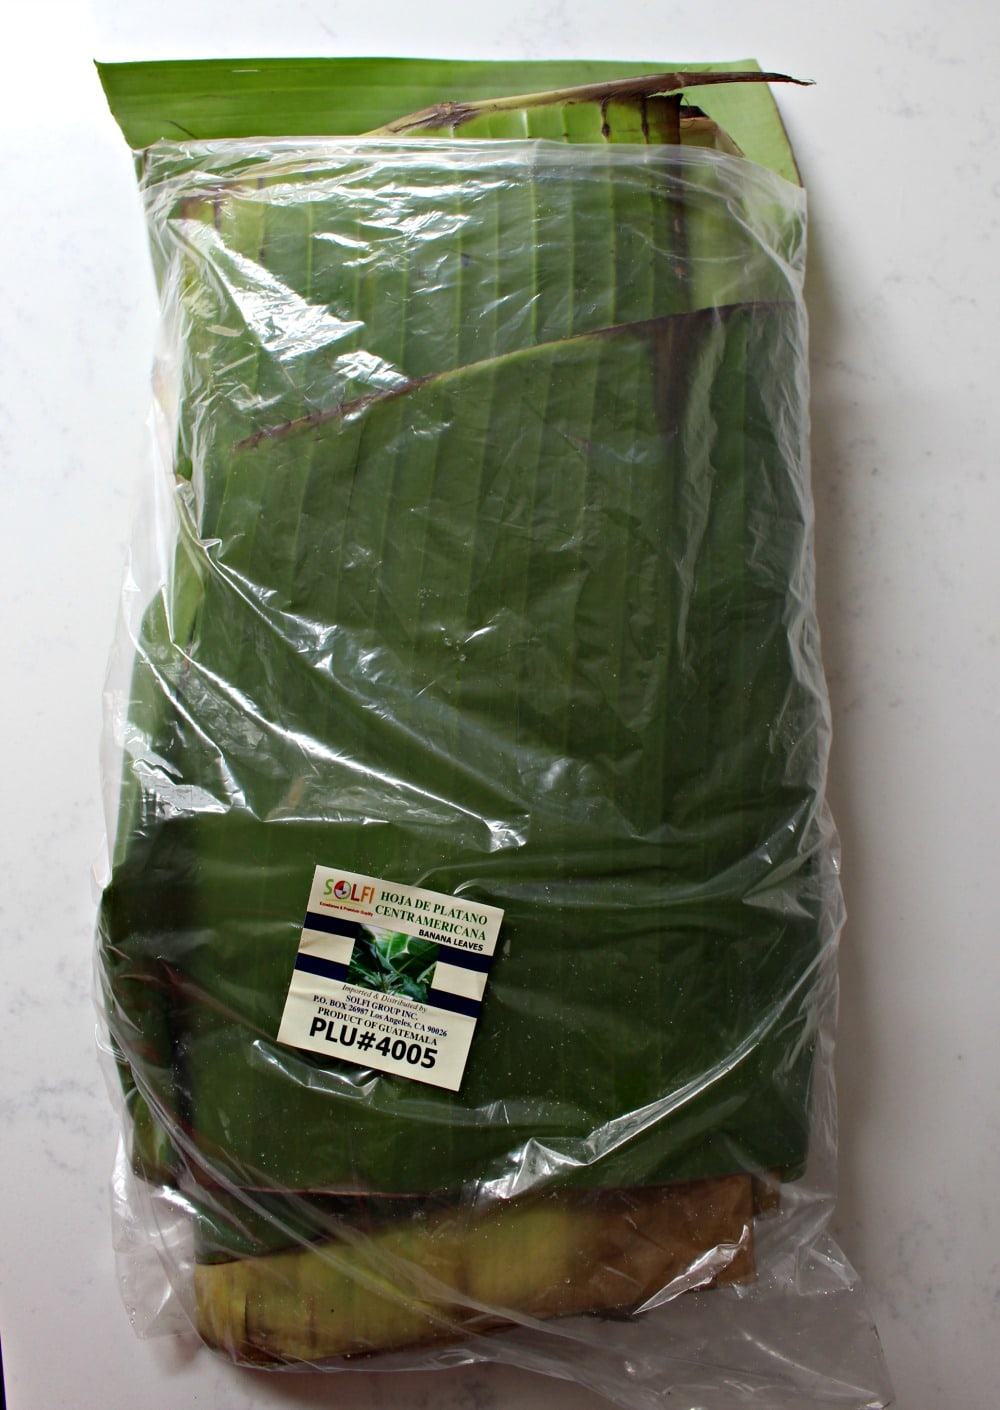 A package of banana leaves on a white granite countertop.